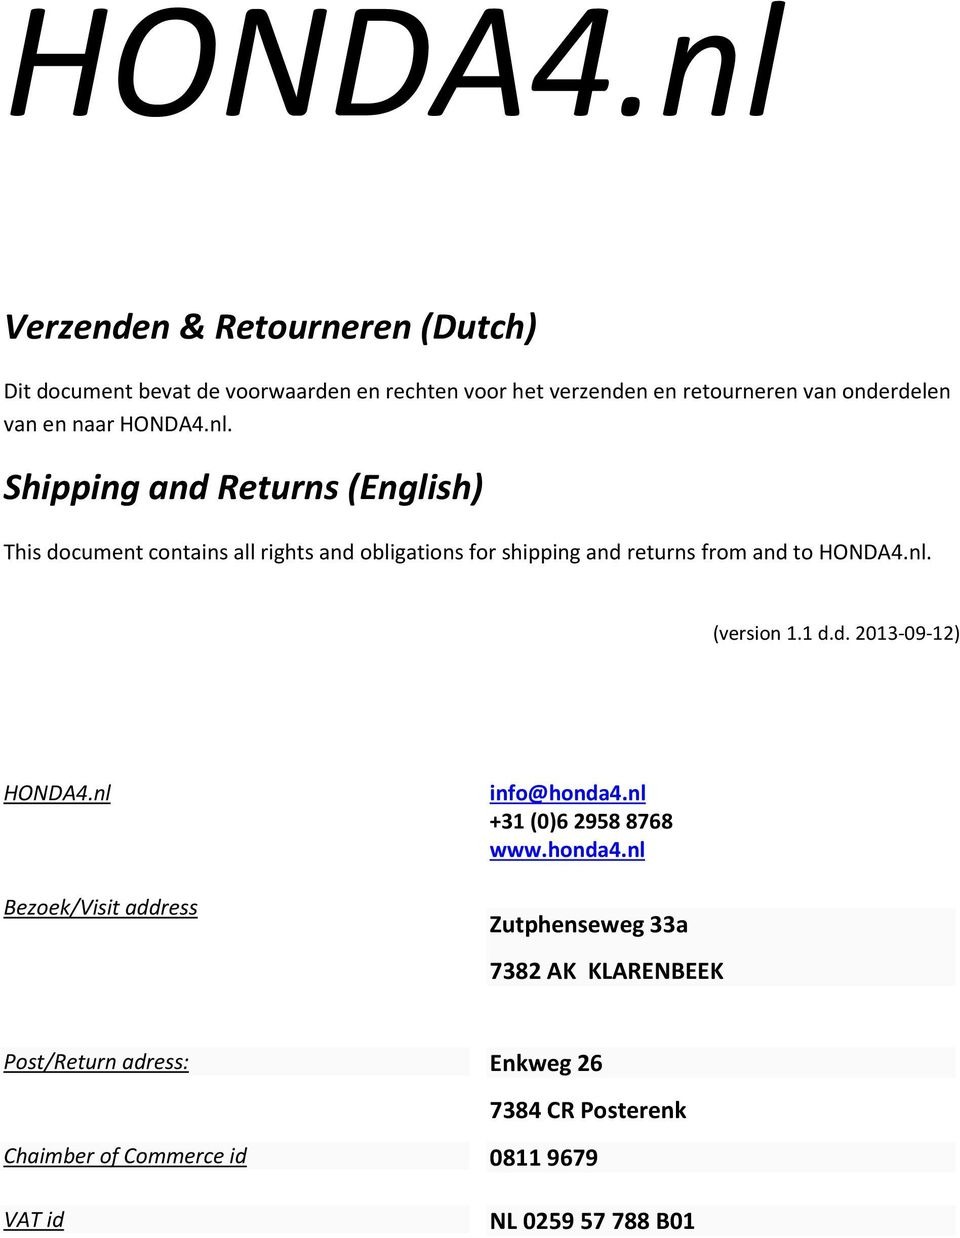 en naar nl. Shipping and Returns (English) This document contains all rights and obligations for shipping and returns from and to nl.